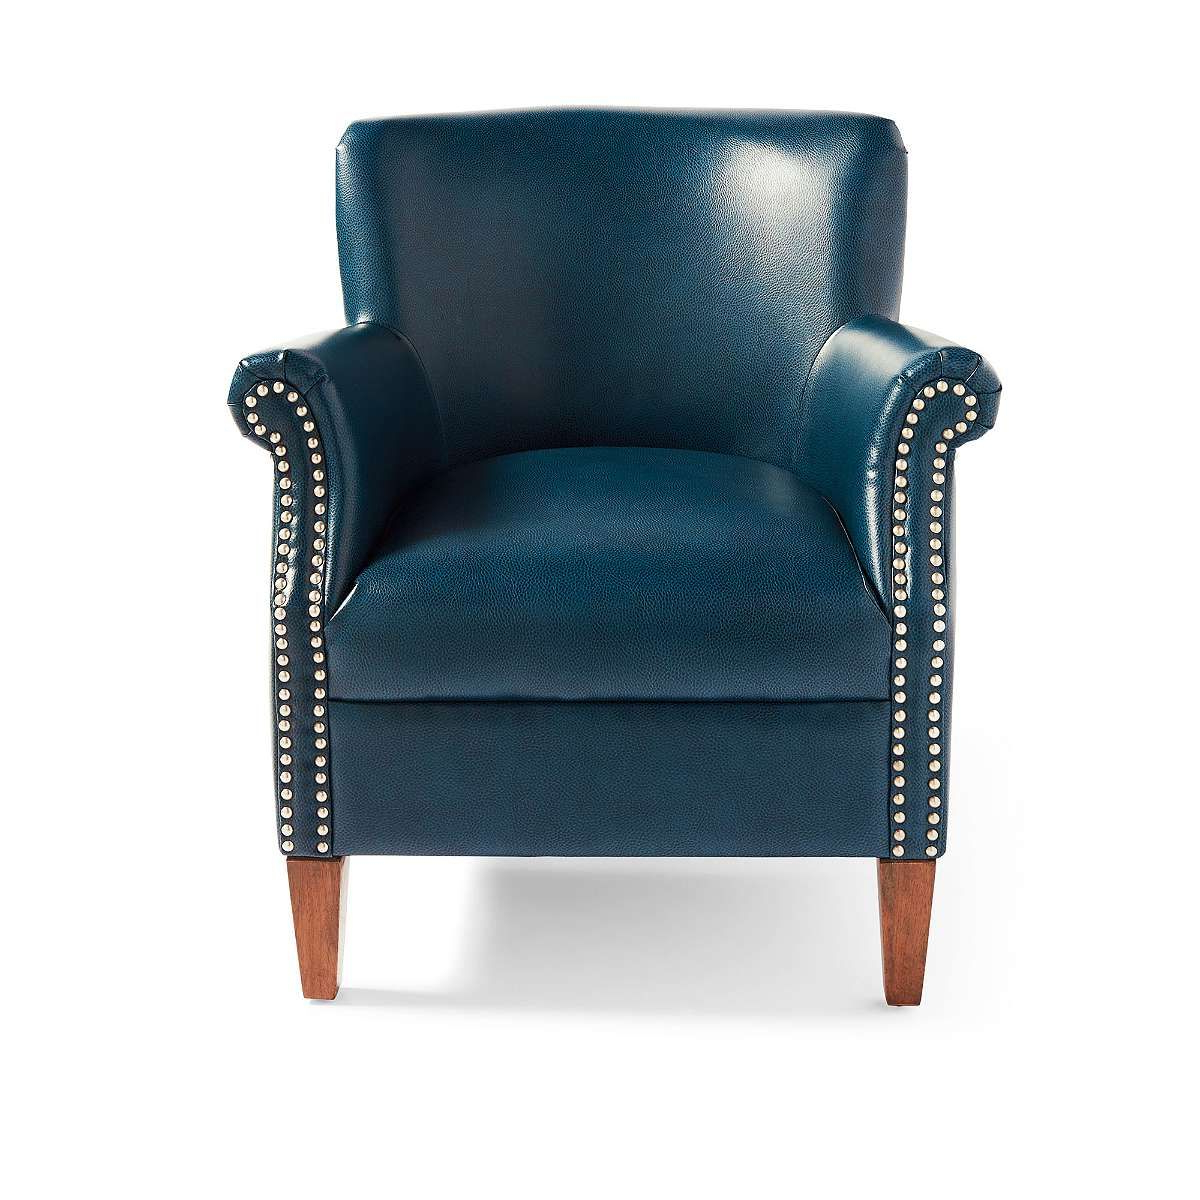 Pinterest Regarding Current Grandin Leather Sofa Chairs (View 5 of 20)